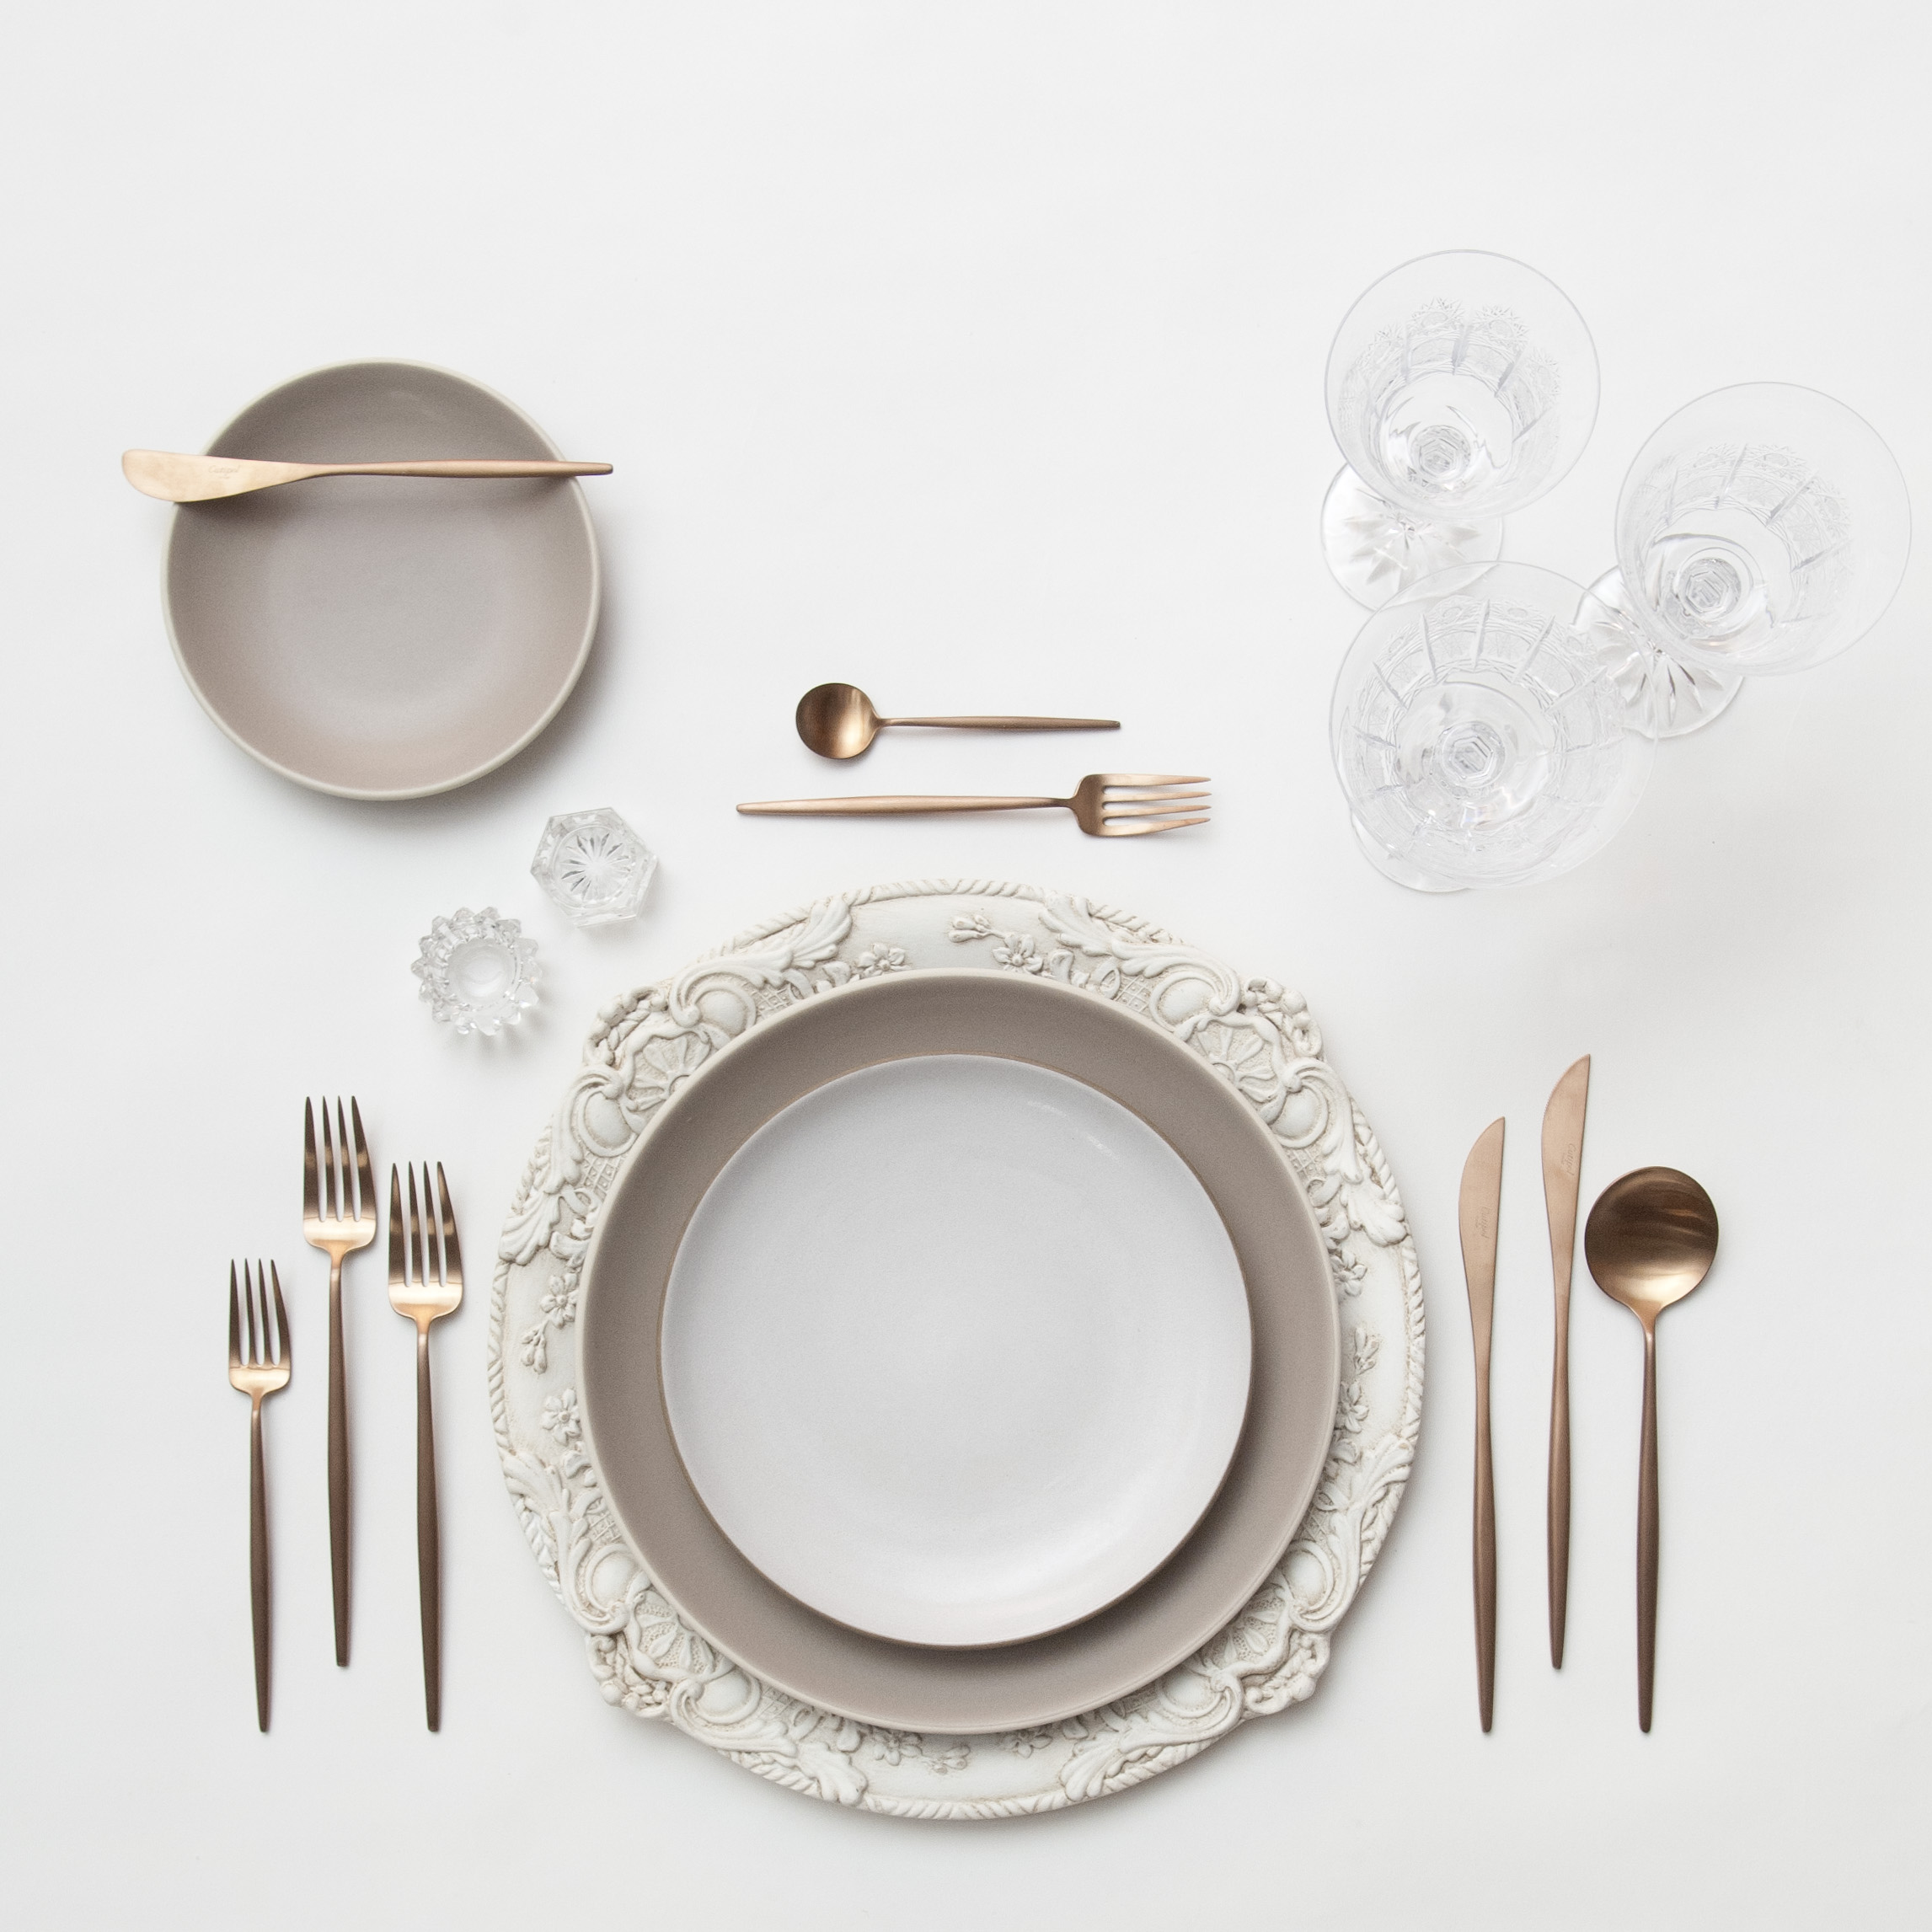 RENT: Verona Chargers in Antique White + Heath Ceramics in French Grey/Opaque White + Moon Flatware in Brushed Rose Gold + Czech Crystal Stemware + Antique Crystal Salt Cellars  SHOP:Verona Chargers in Antique White + Moon Flatware in Brushed Rose Gold